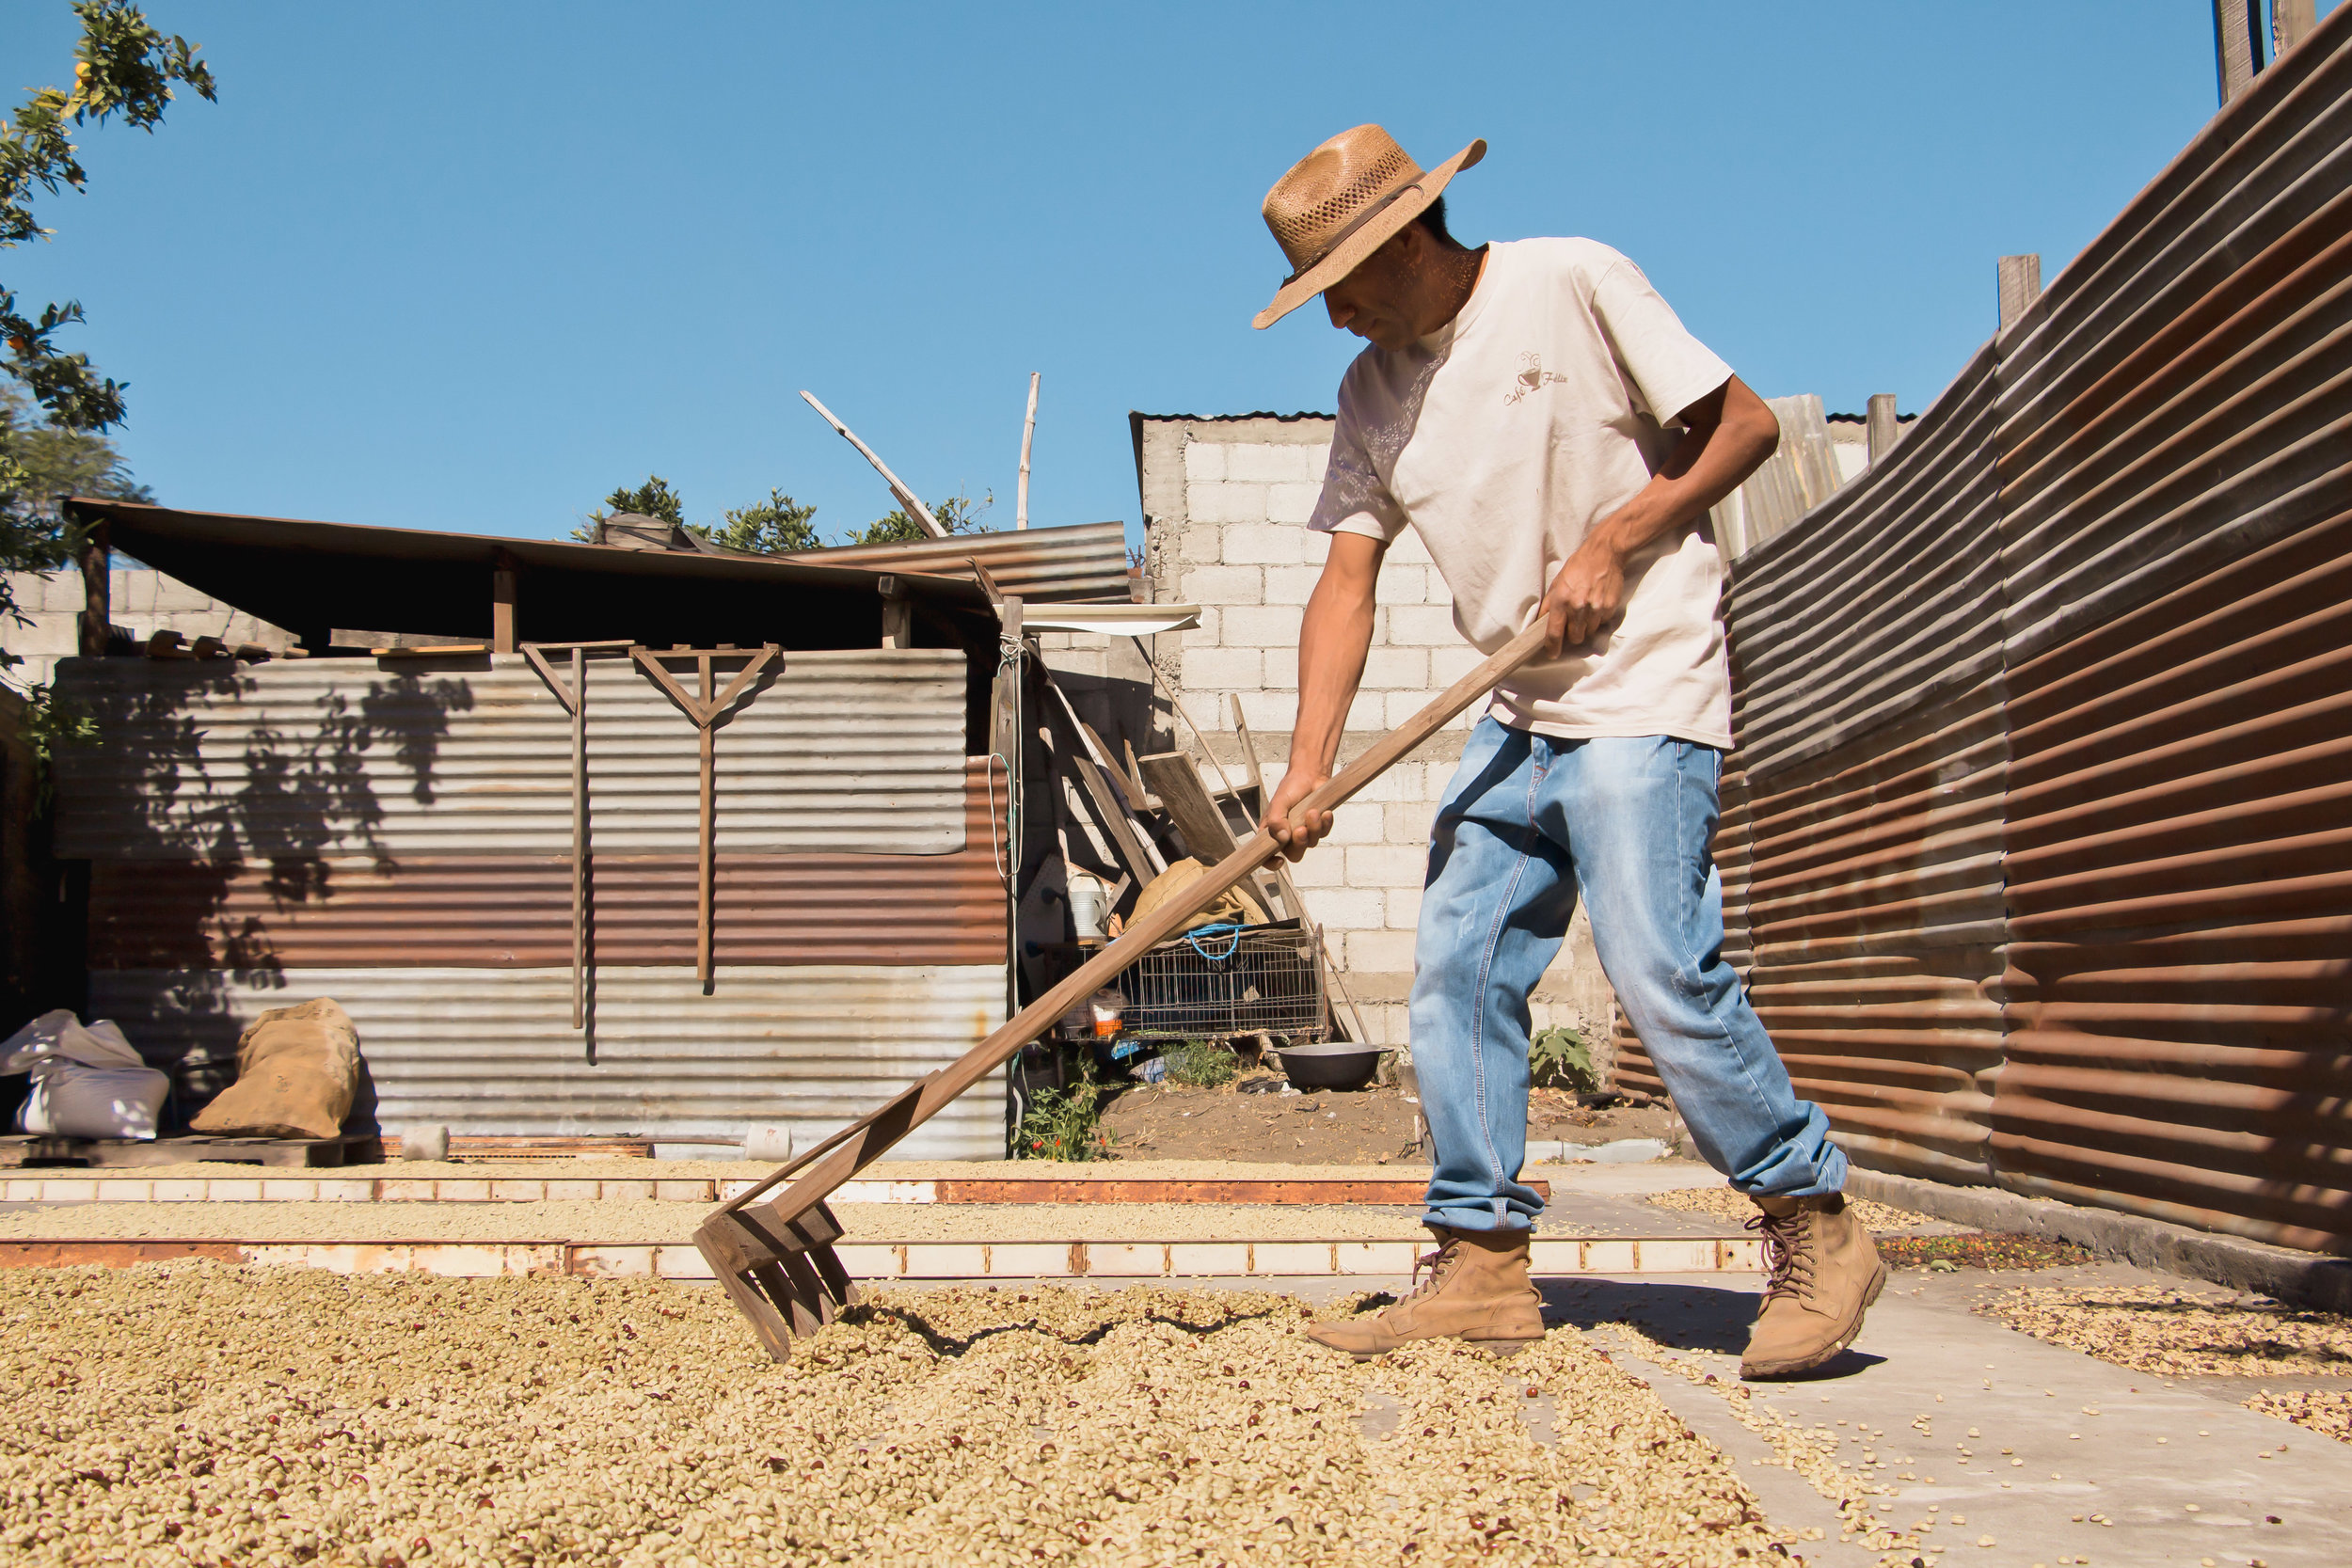 FELIX PORÓN MEDIO RAKES COFFEE BEANS ON HIS BACK PORCH TO ENSURE SUCCESSFUL DRIVING ON JAN. 18. THE MAJORITY OF THE COFFEE MAKING PROCESS IS DONE IN PORÓN AND EUGENIA'S HOME IN THE CITY OF SAN AMIGUEL DUEÑA, GUATEMALA.